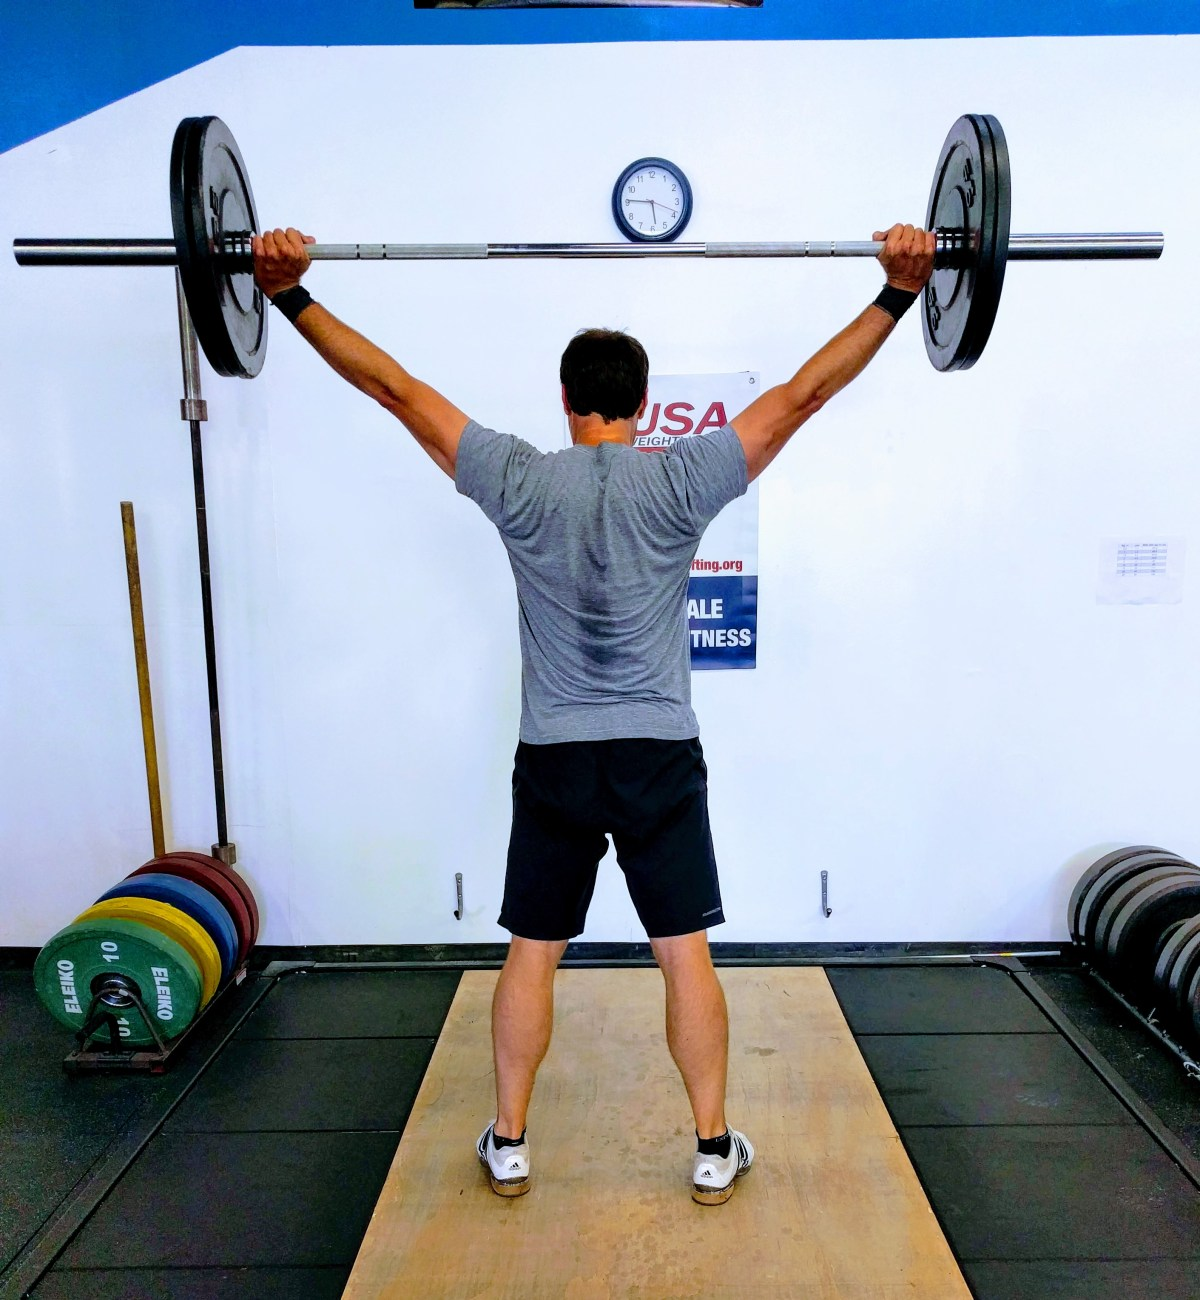 Lift lighter to add muscle, Overhead barbell lift